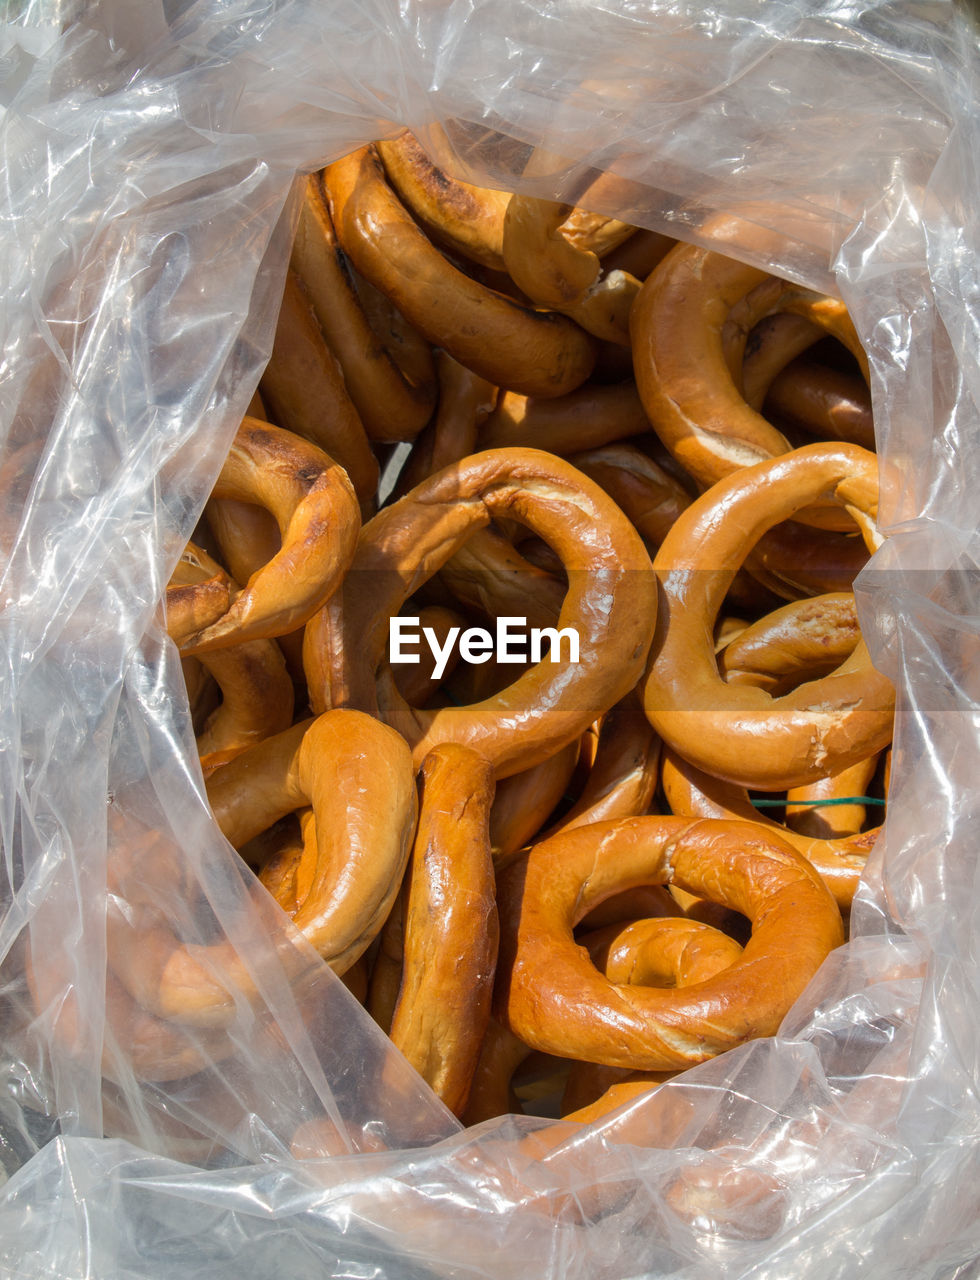 food, food and drink, freshness, bag, plastic, still life, plastic bag, no people, snack, high angle view, pretzel, indoors, large group of objects, transparent, ready-to-eat, for sale, close-up, unhealthy eating, retail, abundance, salted, polythene